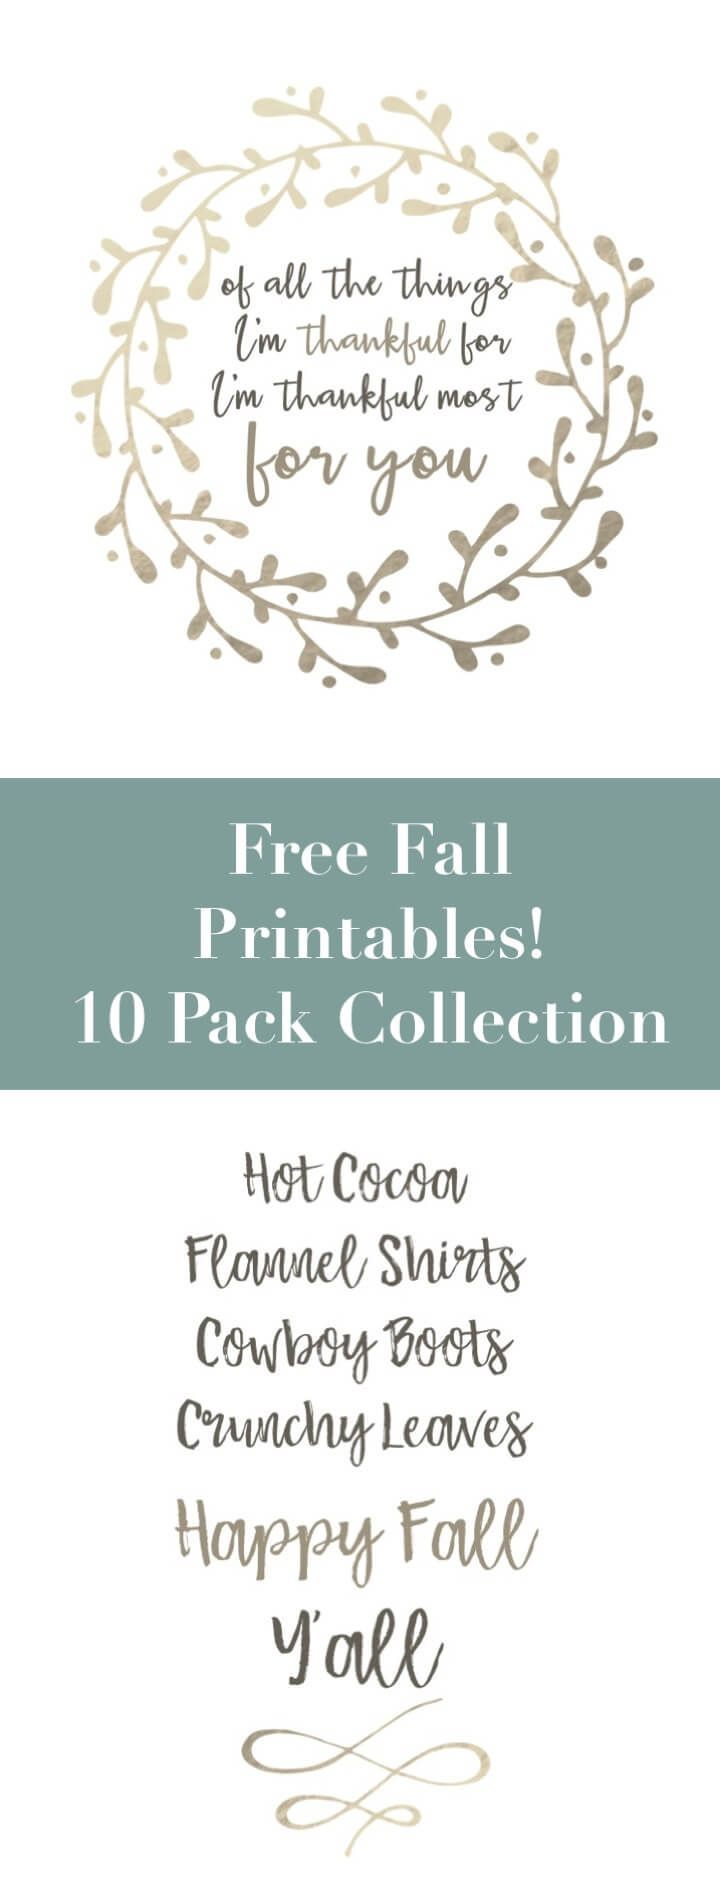 Download this gorgeous fall art print collection for free for easy, affordable, budget friendly DIY decor.  Perfect for your home, your walls, small spaces, apartments or living rooms and super budget friendly.  Printables!